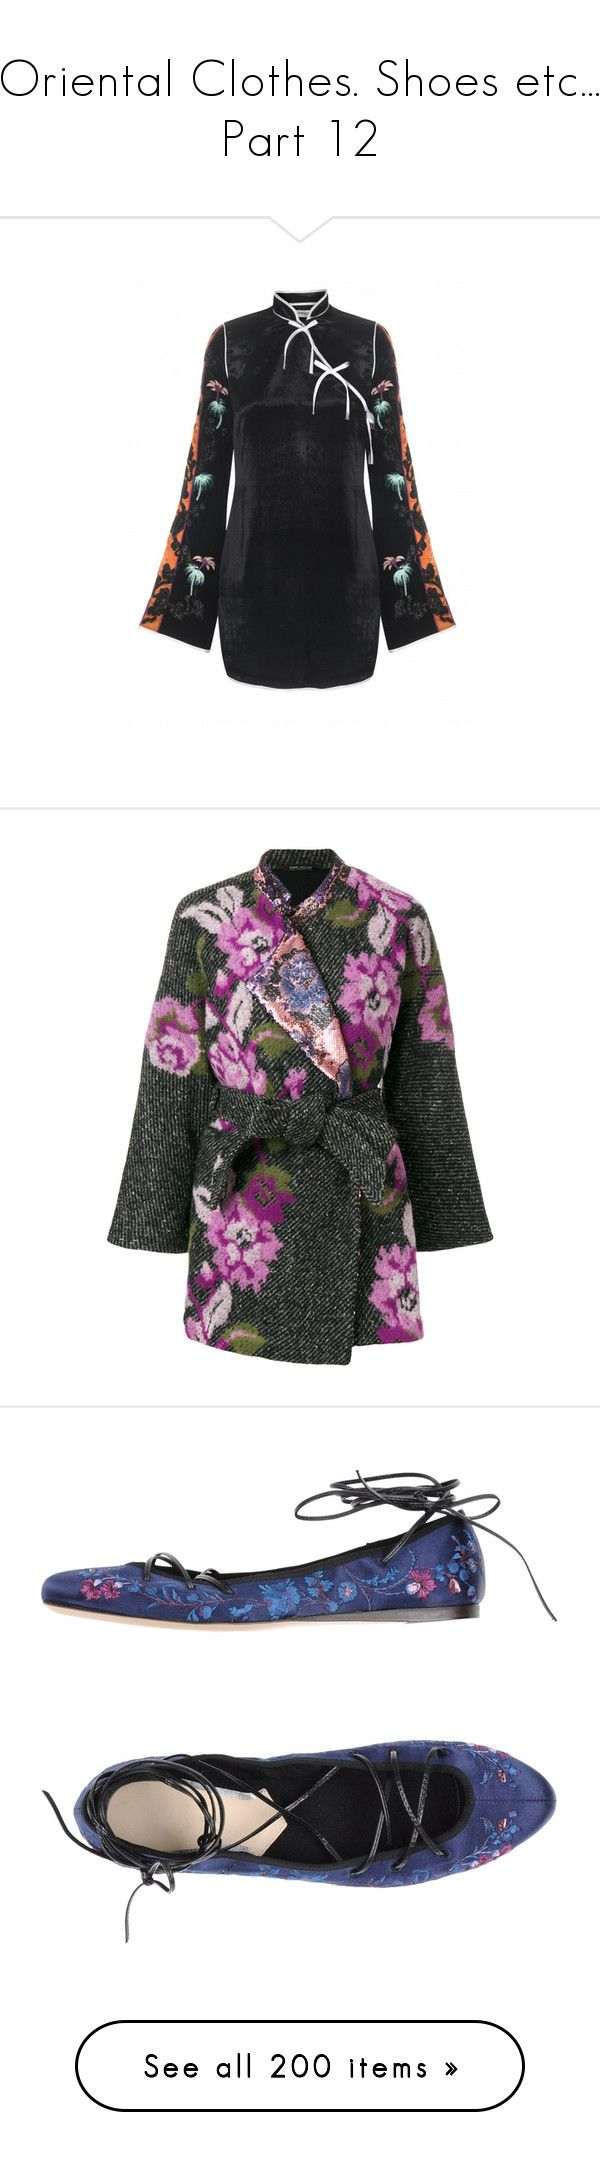 """""""Oriental Clothes. Shoes etc... Part 12"""" by leanne-mcclean ❤ liked on Polyvore featuring outerwear, coats, cape coats, grey cape coat, grey coat, gray coat, floral print coats, shoes, flats and dark blue"""